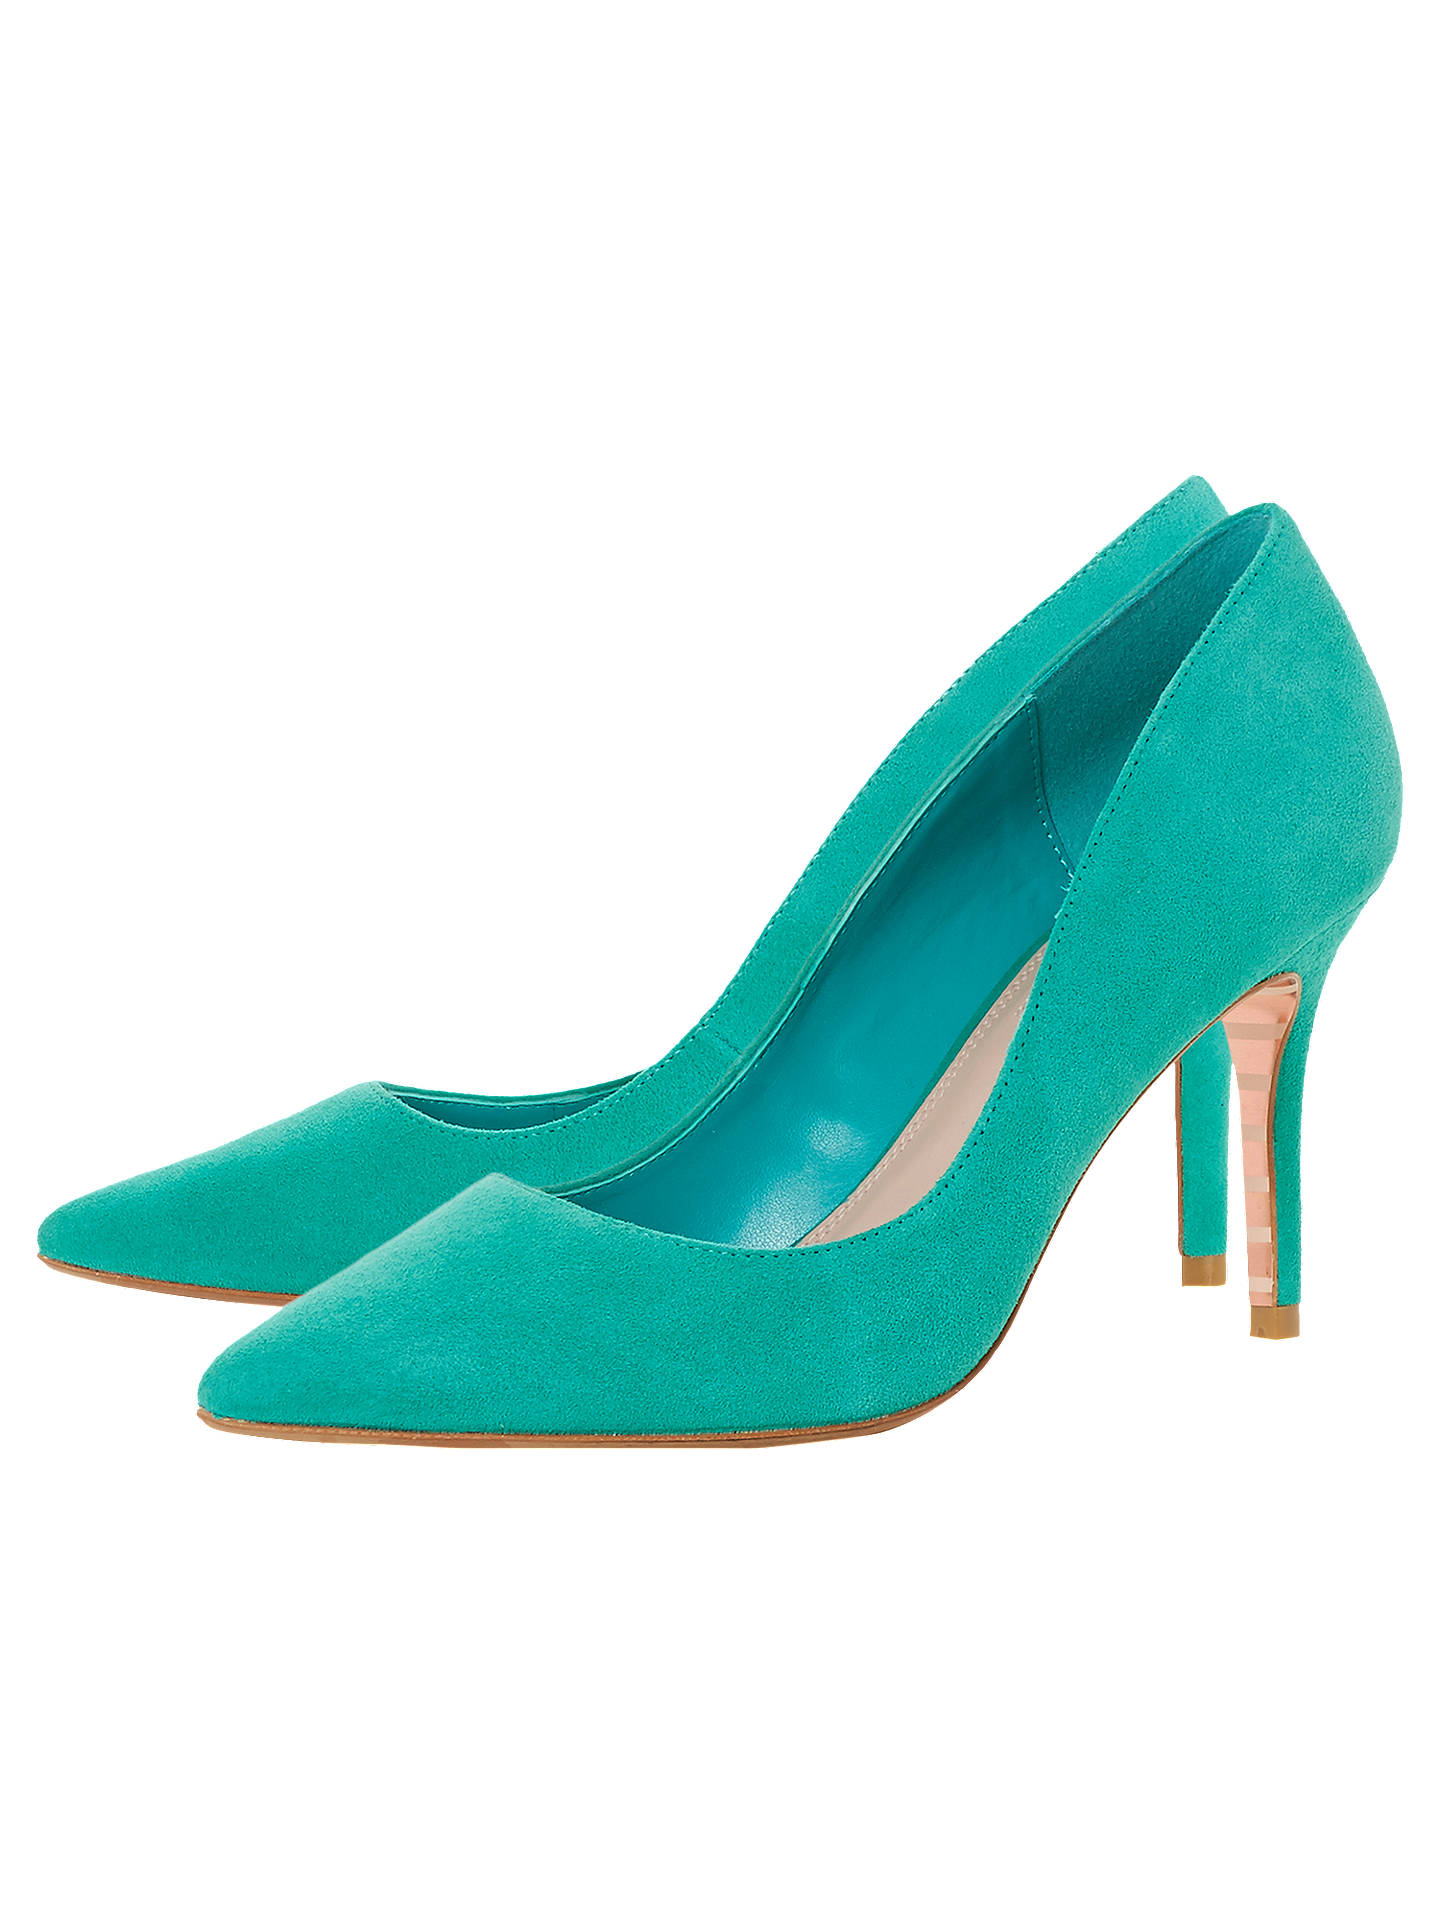 BuyDune Aurrora Pointed Toe Court Shoes, Green Suede, 5 Online at johnlewis.com